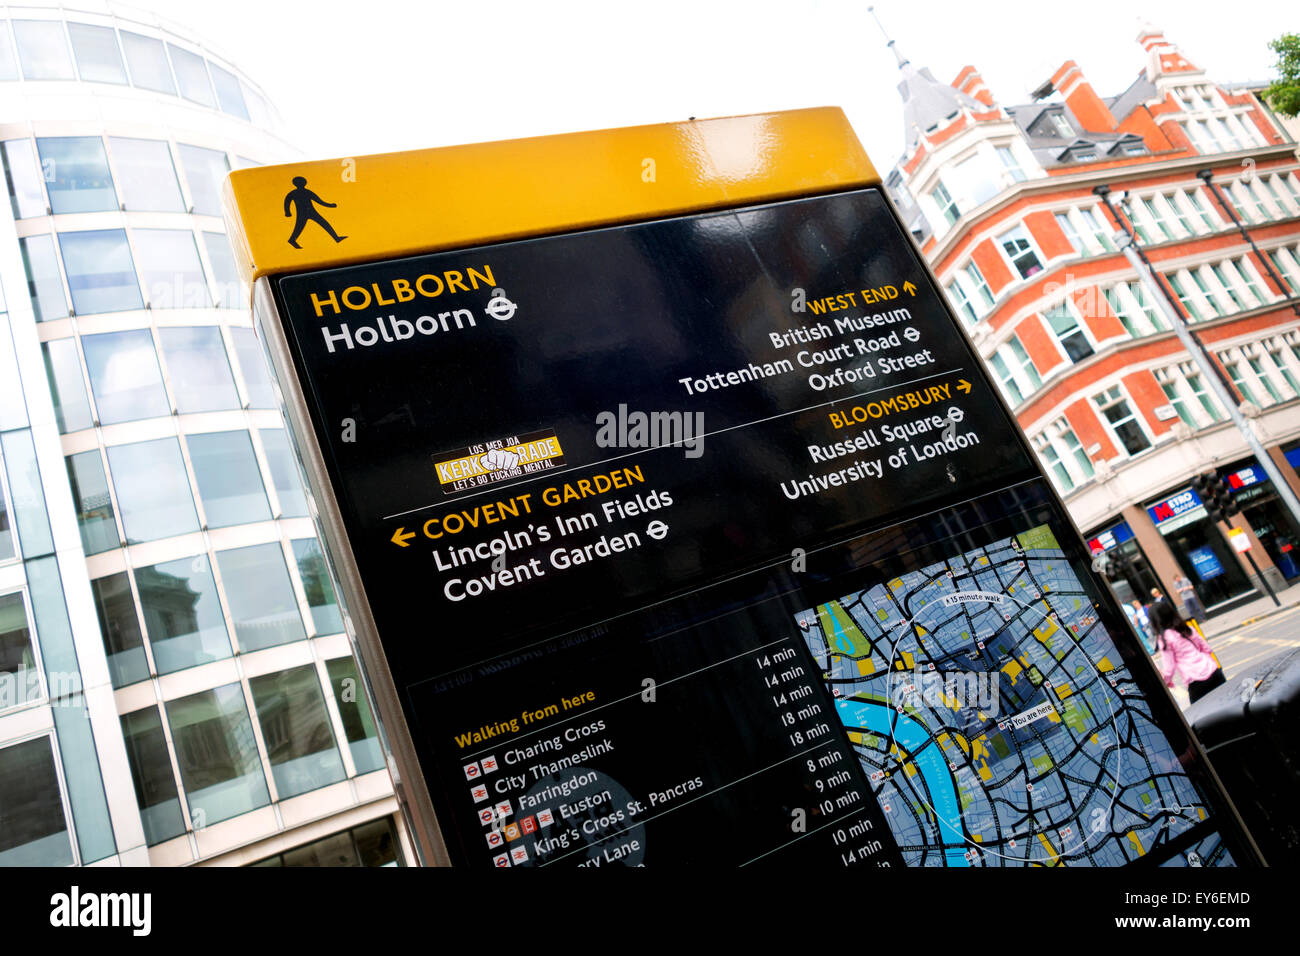 Holborn sign with offensive sticker (swear words), Holborn, WC2,  London UK - Stock Image